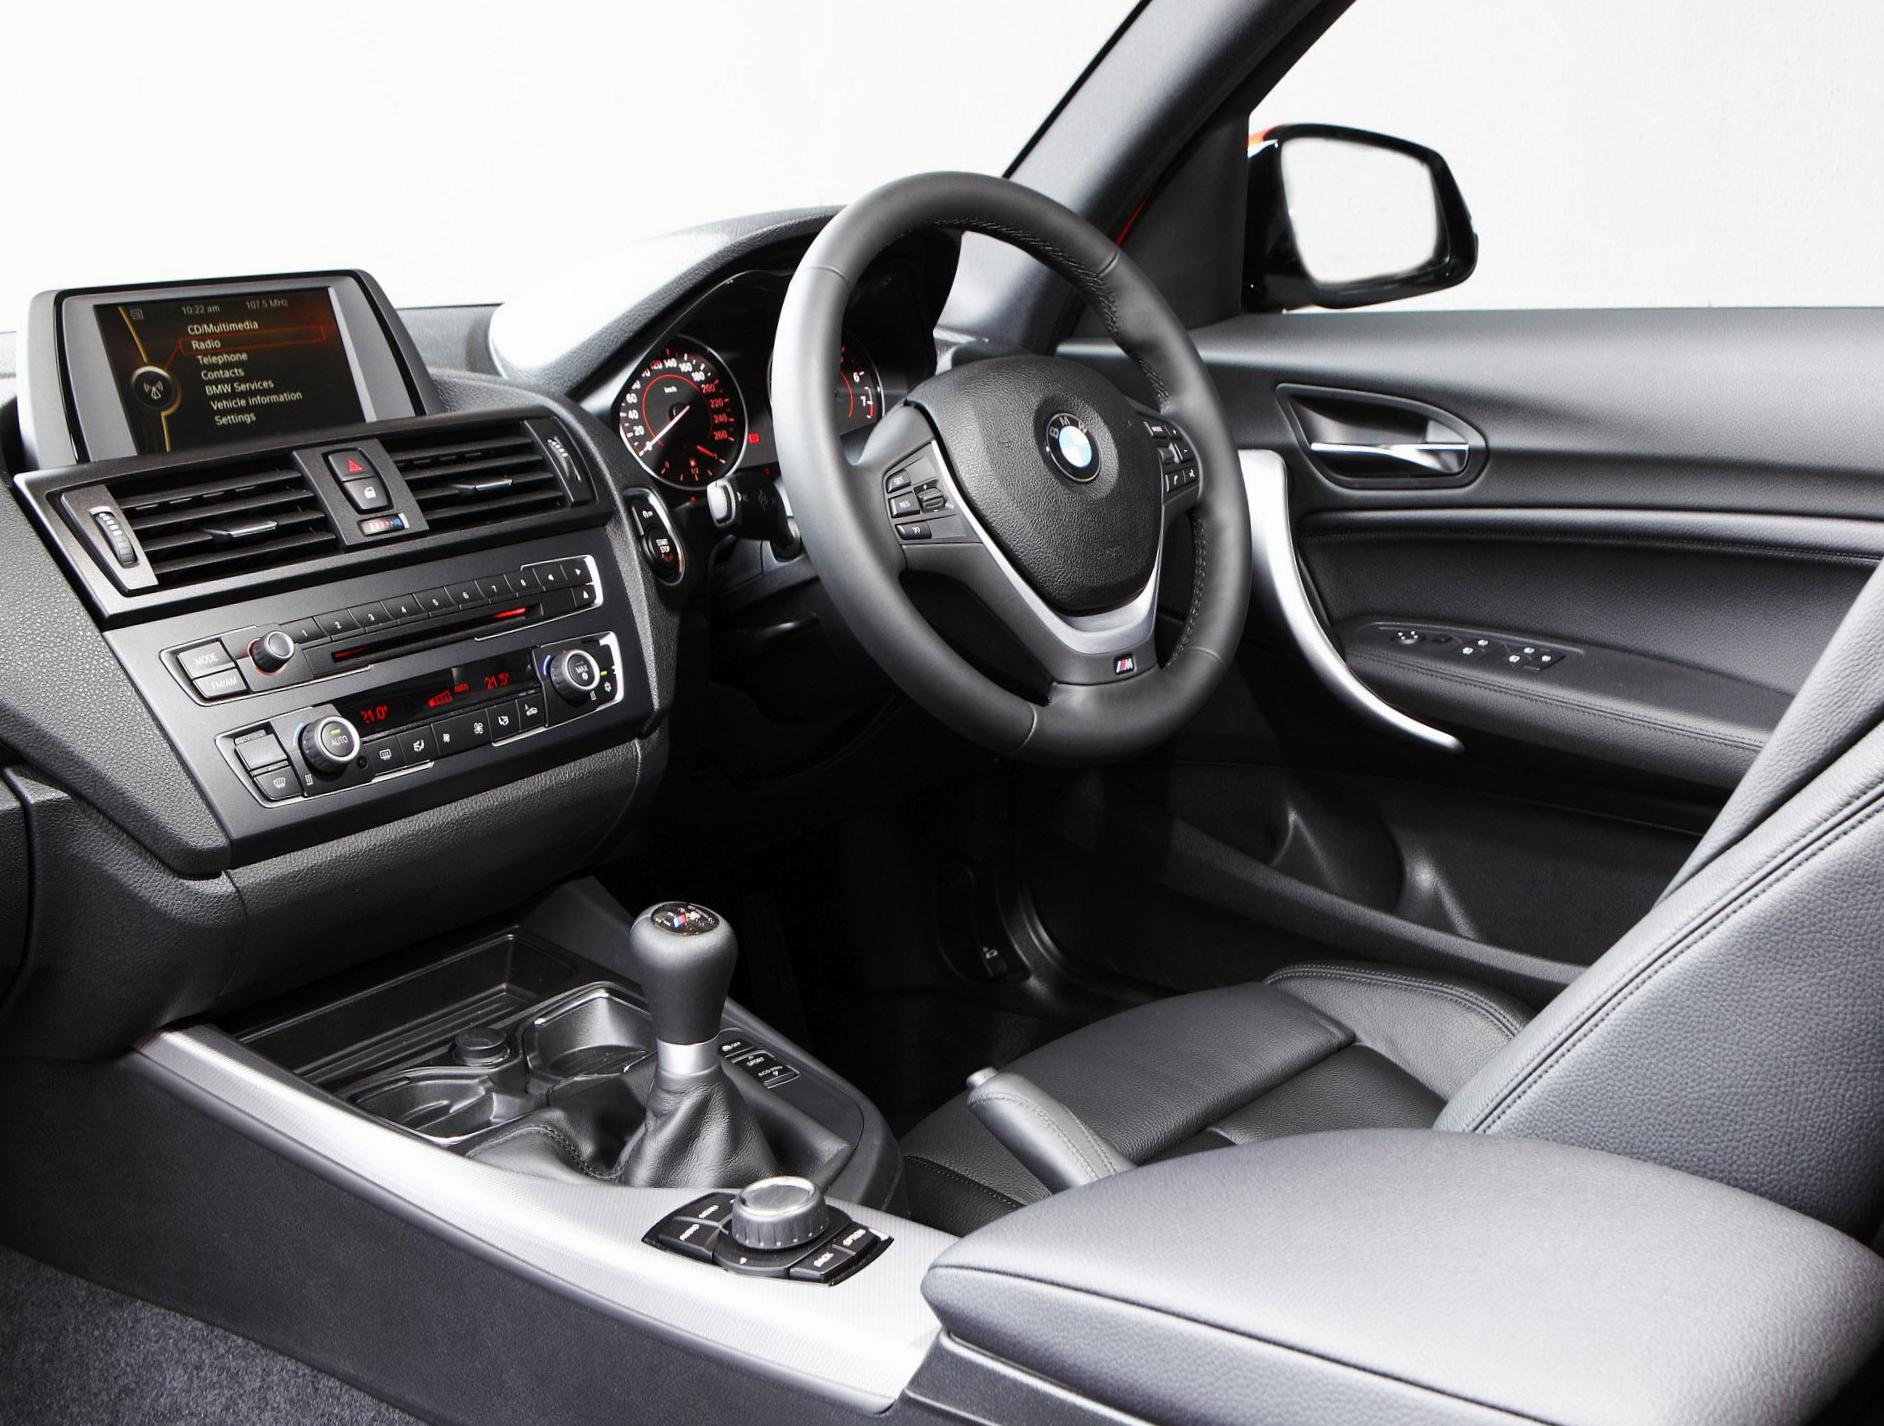 BMW 1 Series 5 doors (F20) review suv